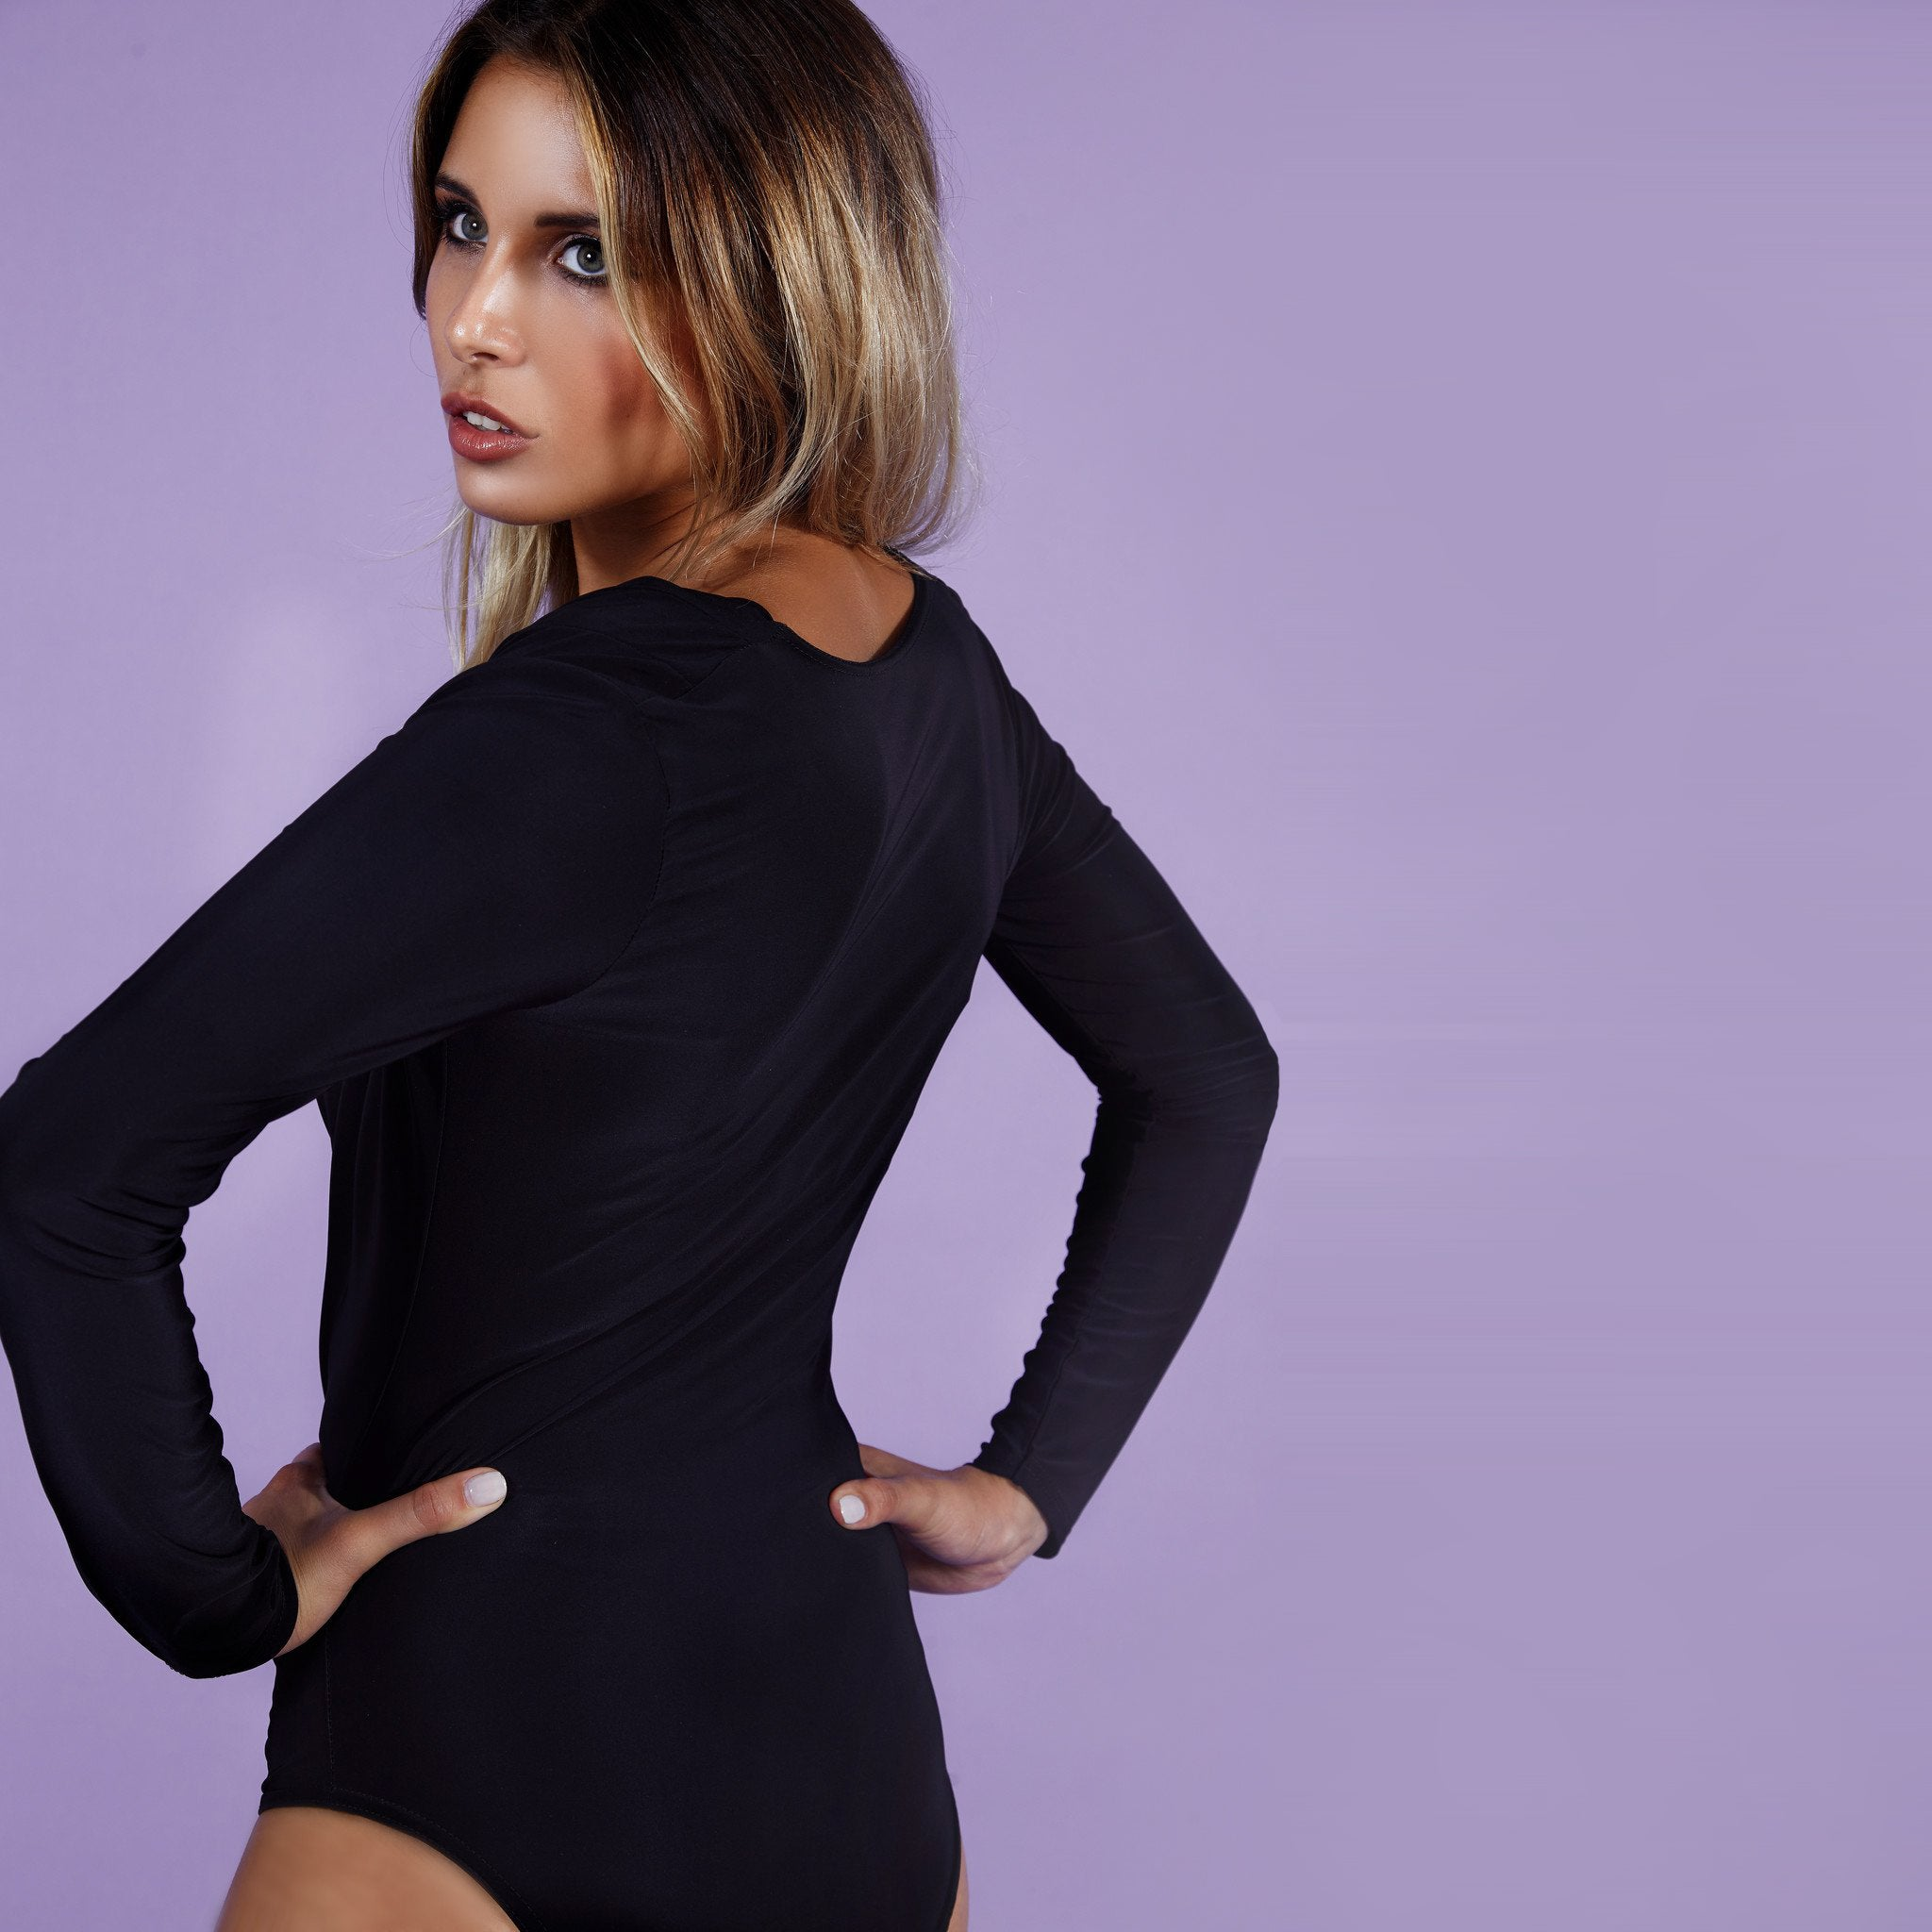 'Serena' Bodysuit Black